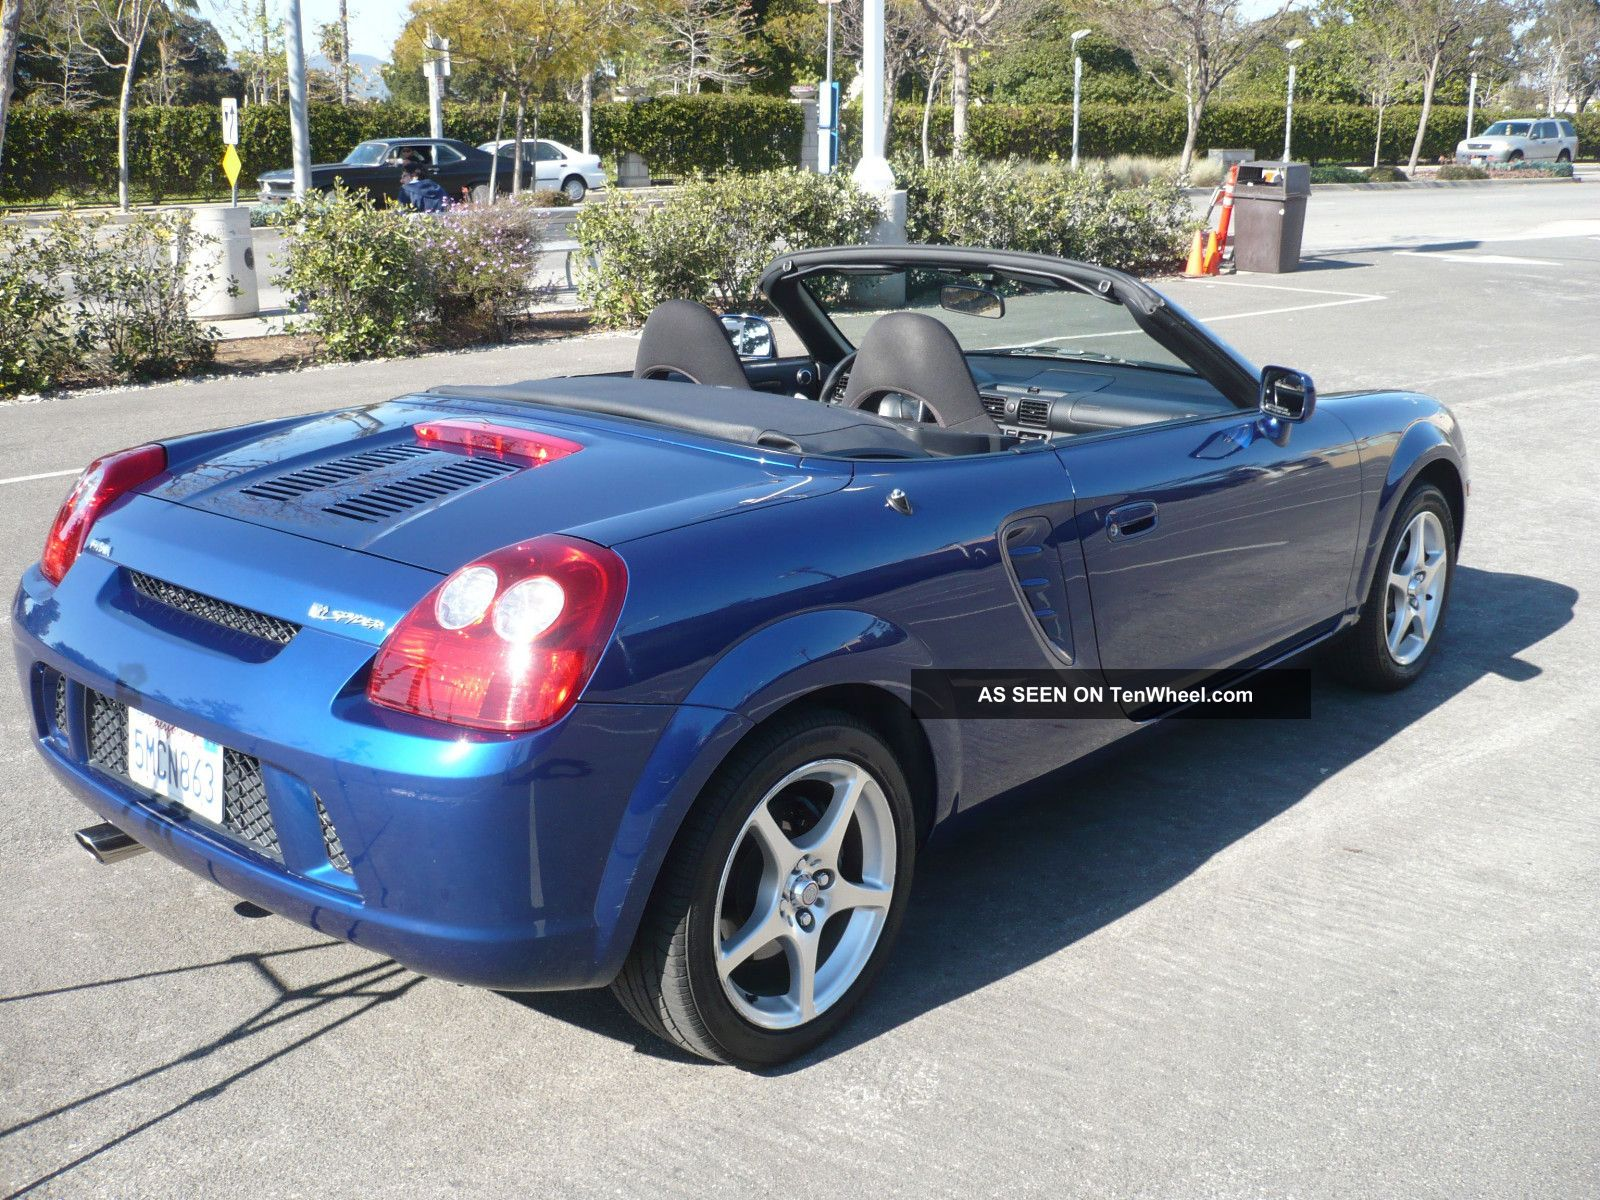 2005 Toyota Mr2 Spyder #10